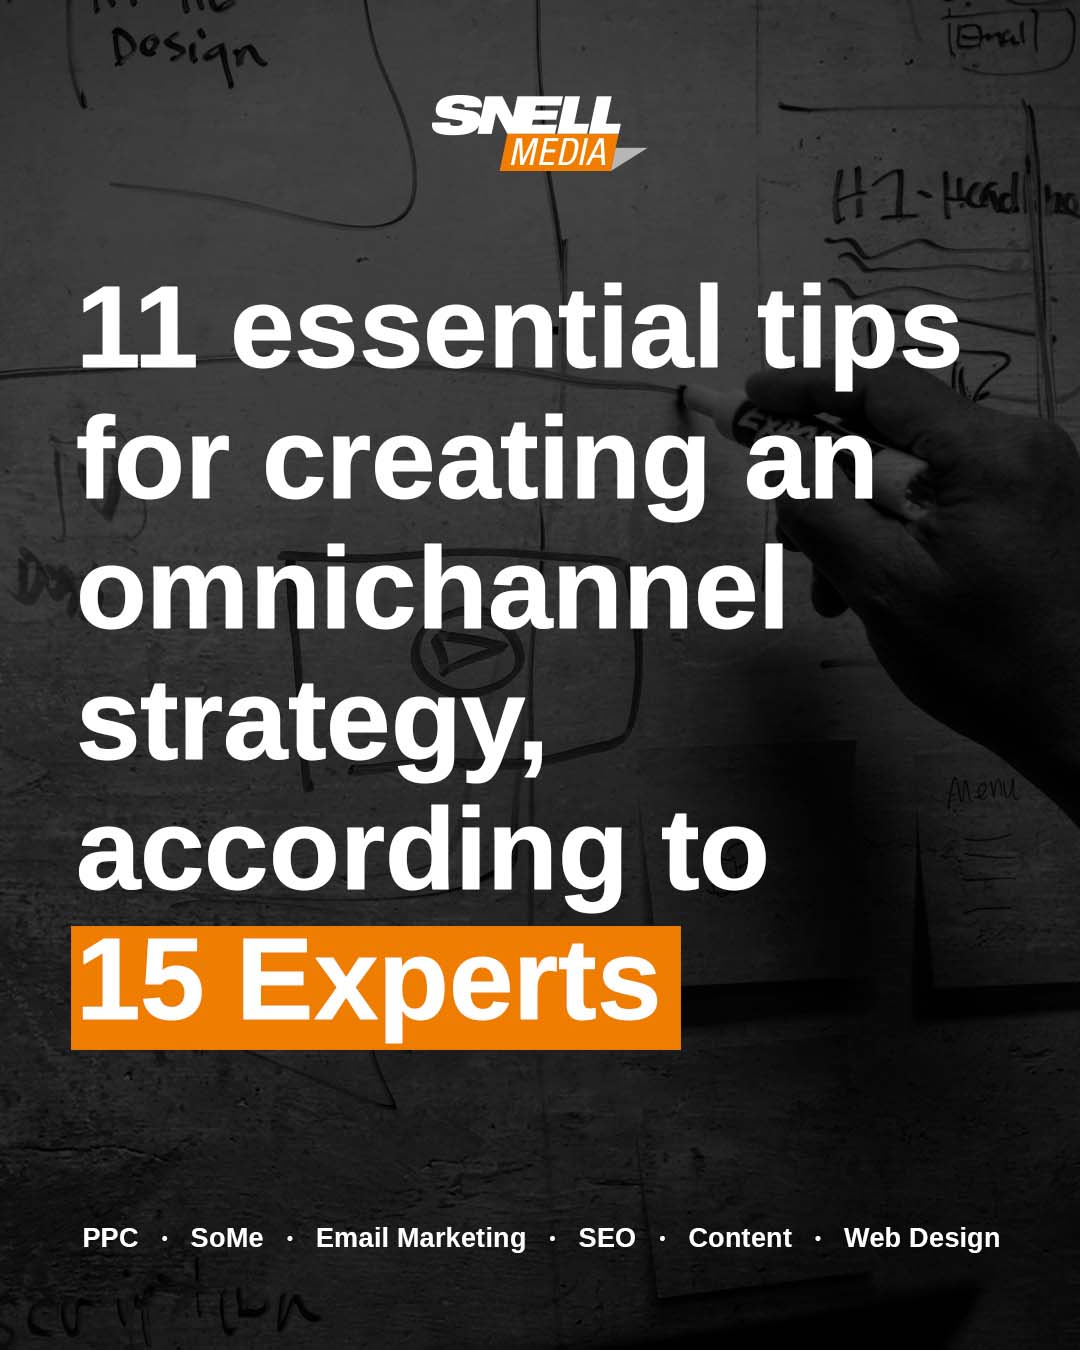 Omnichannel Strategies According to Experts